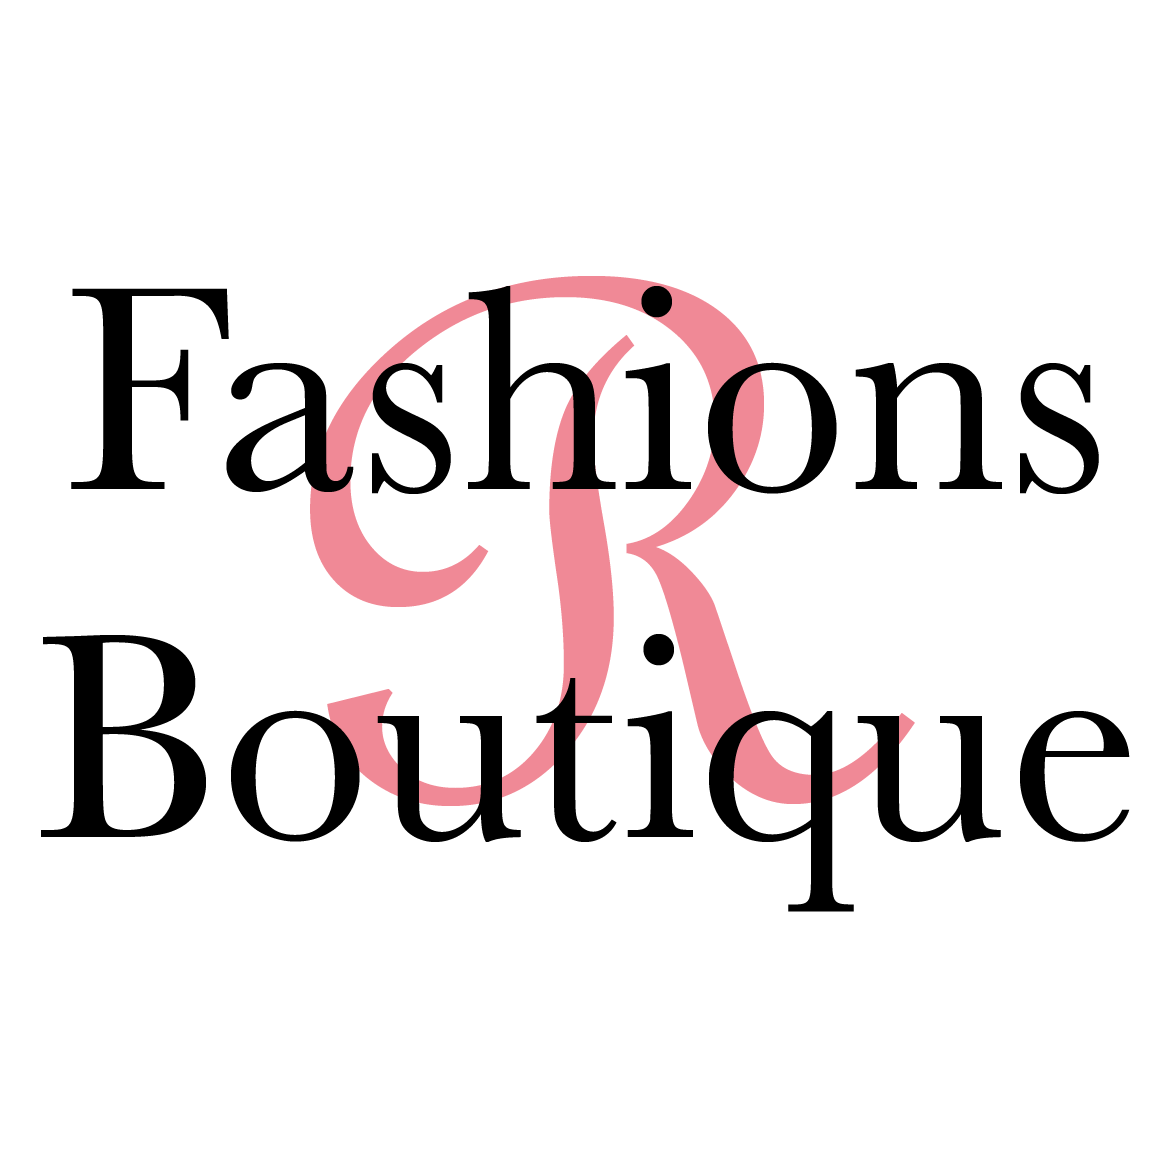 Fashions R Boutique